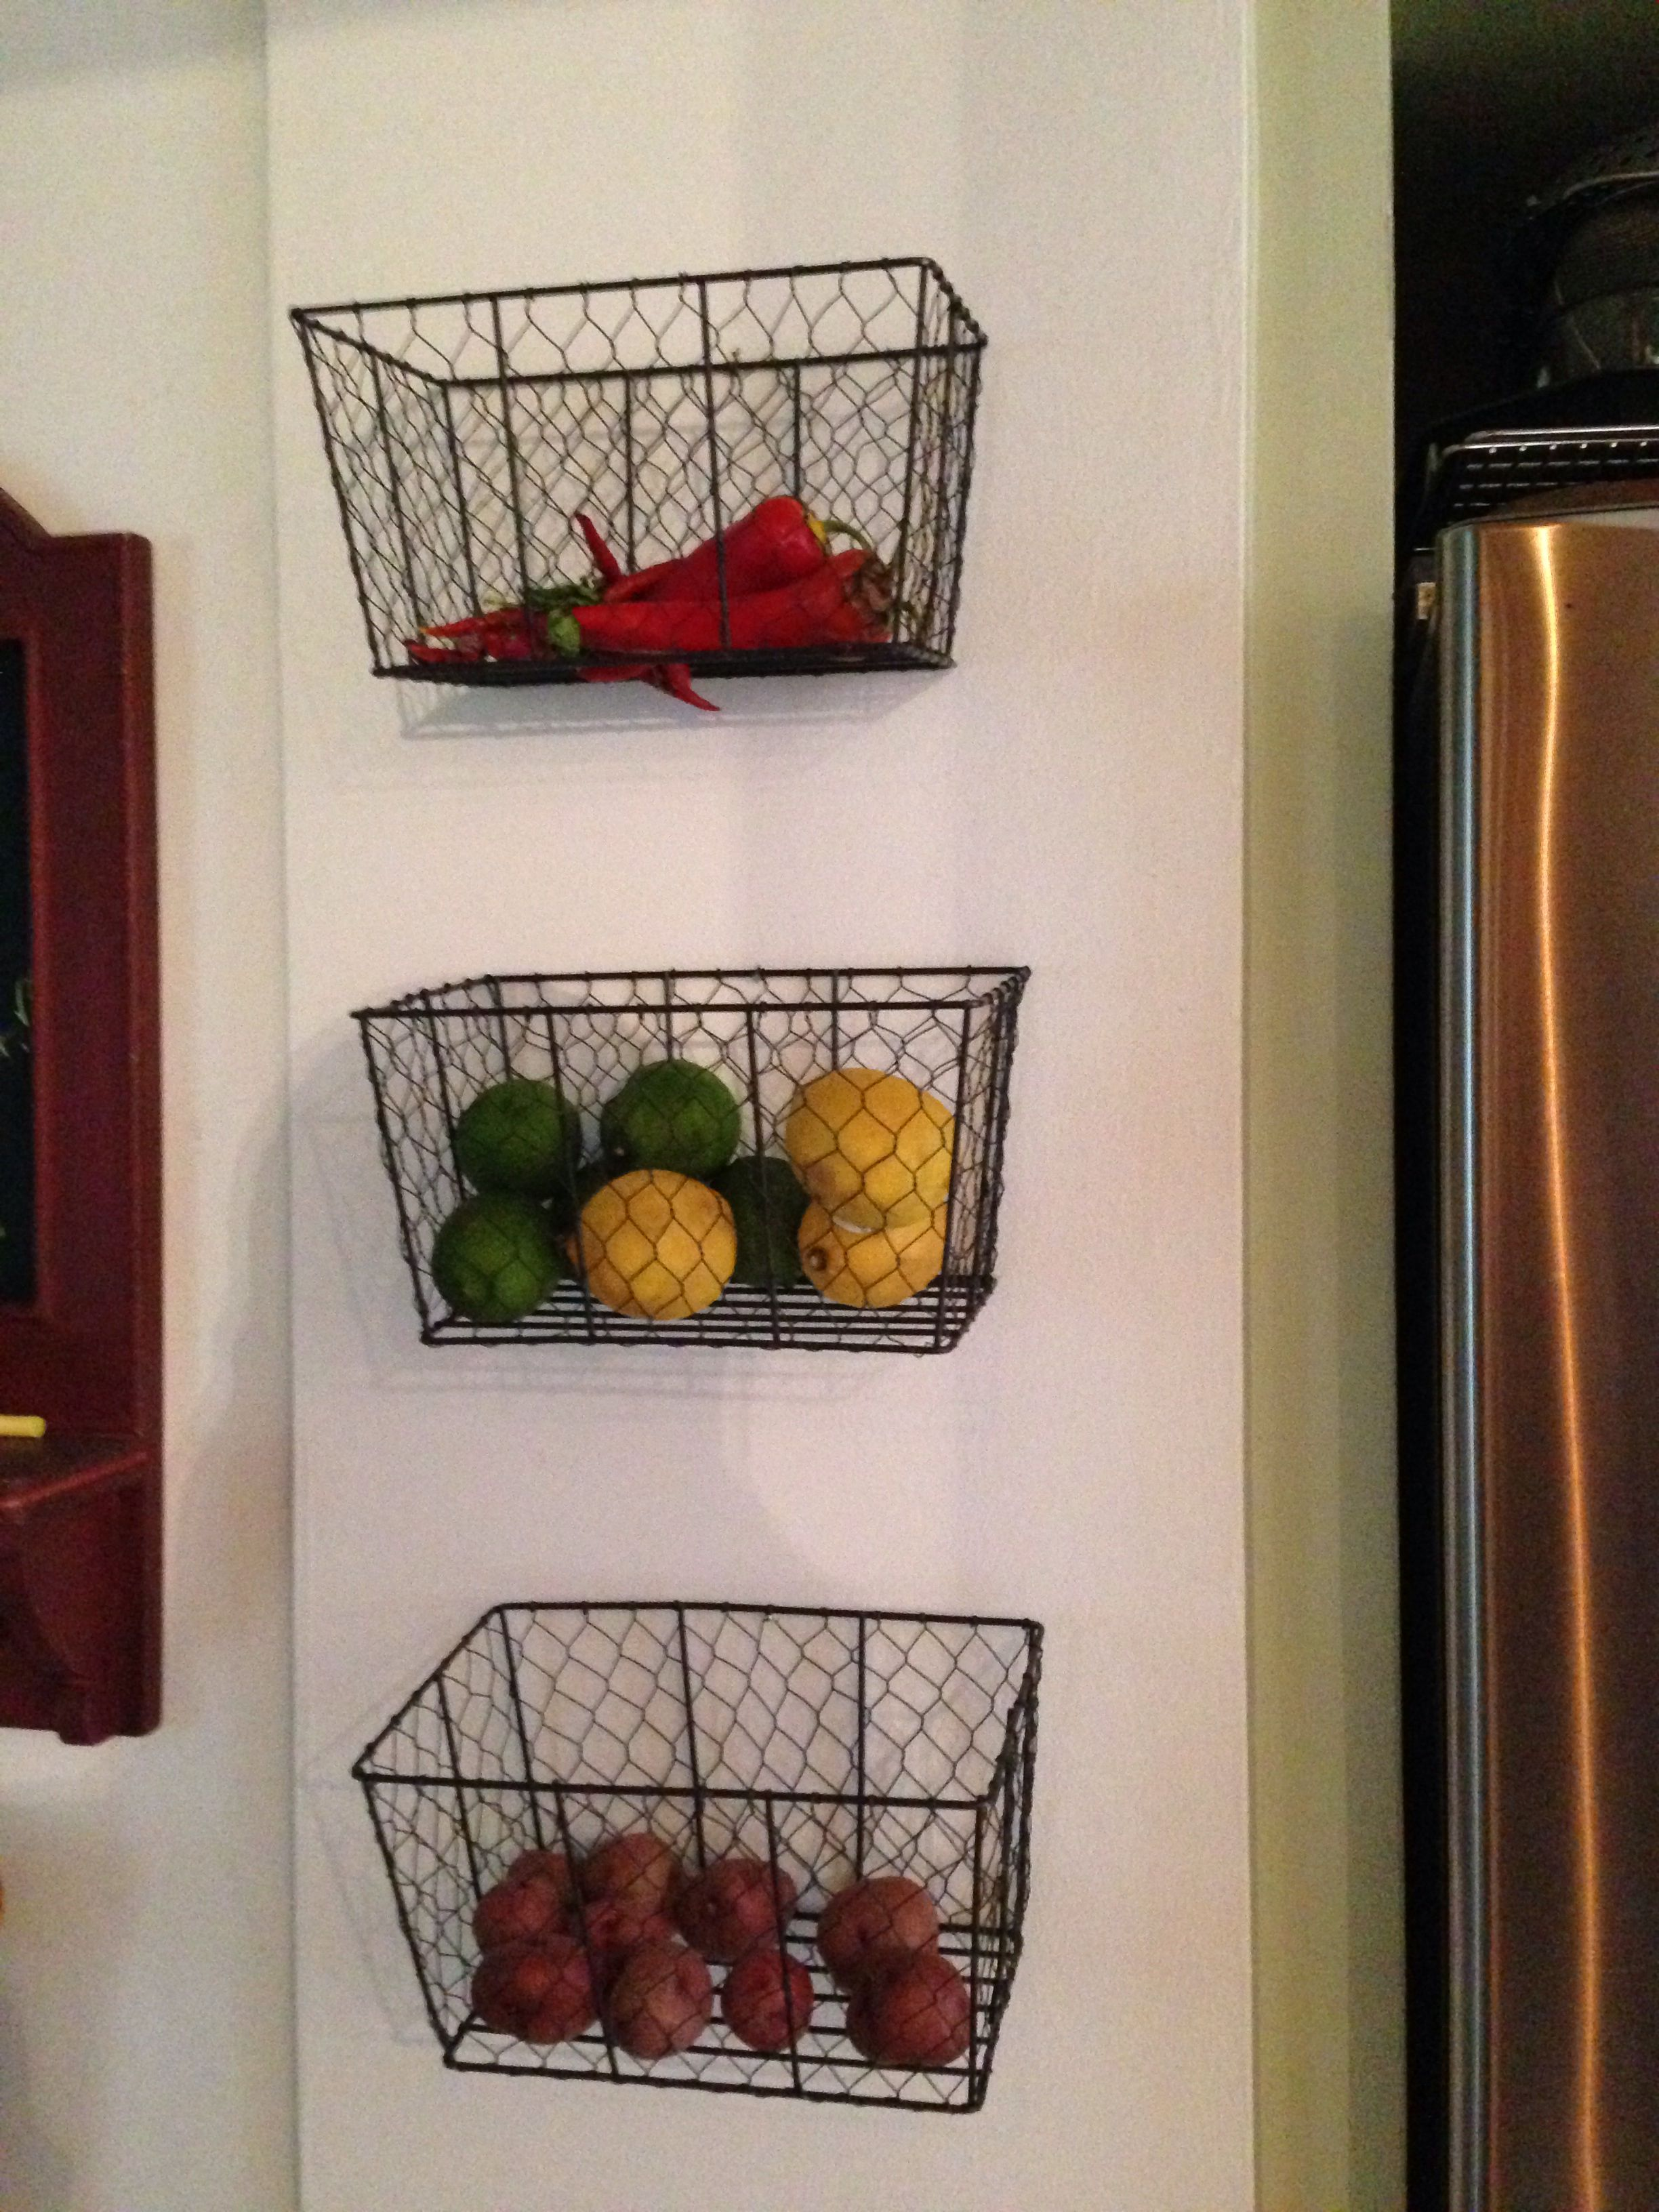 Love this kitchen organization I have a rack that the baskets off